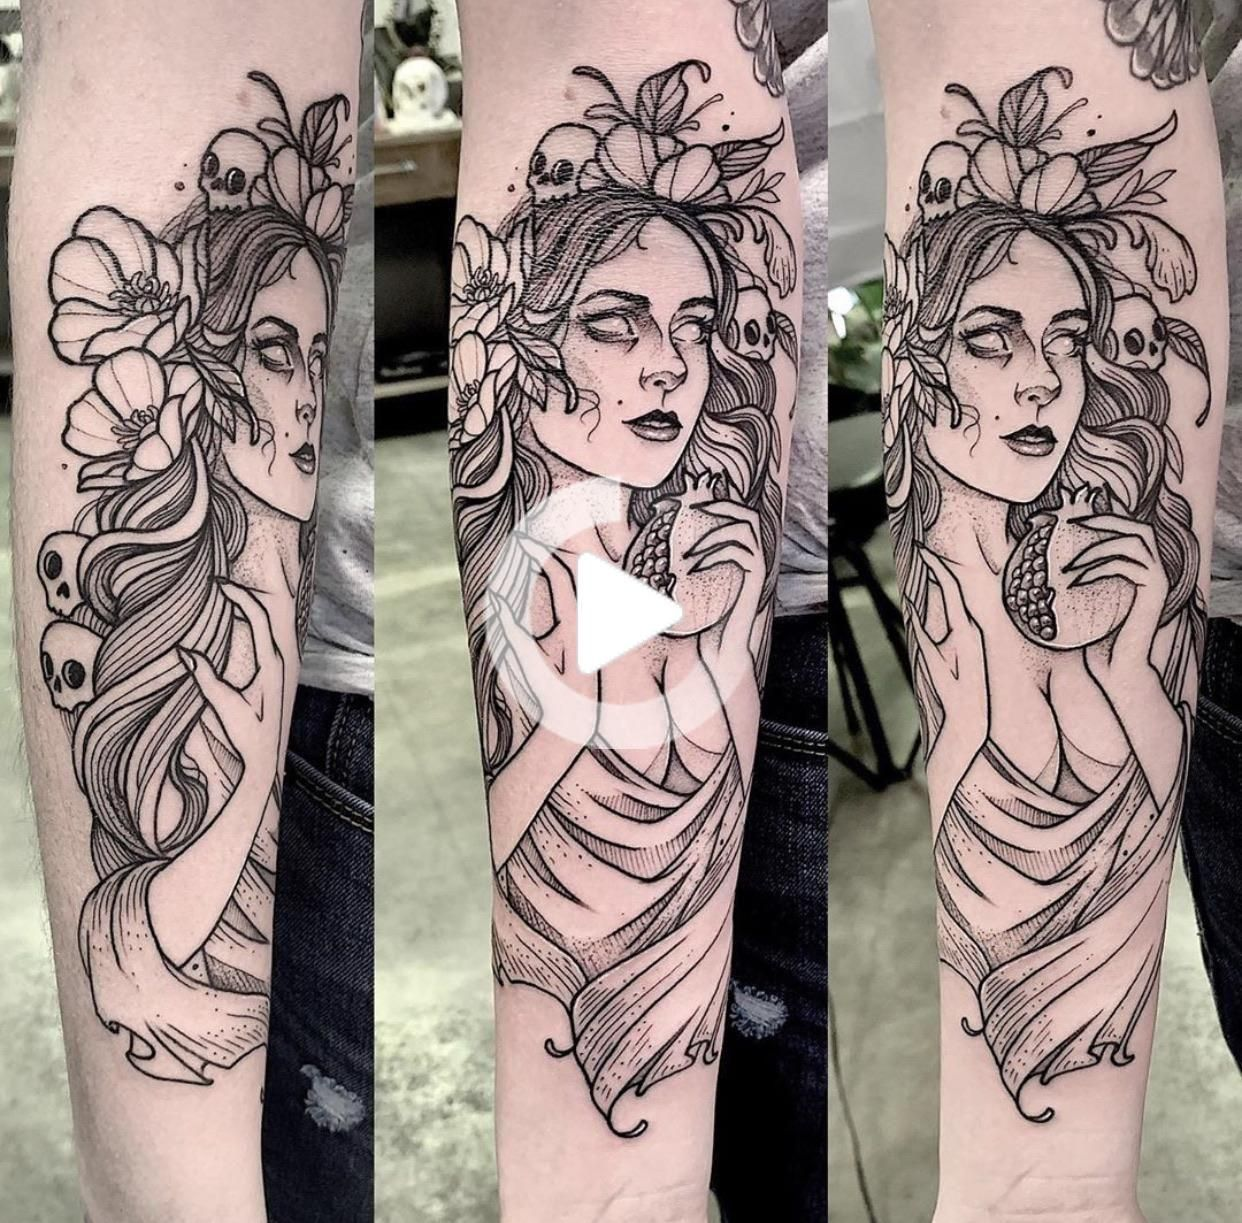 Persephone on my forearm. Done by Cutty Bage at Hollow Moon Tattoo Boone NC